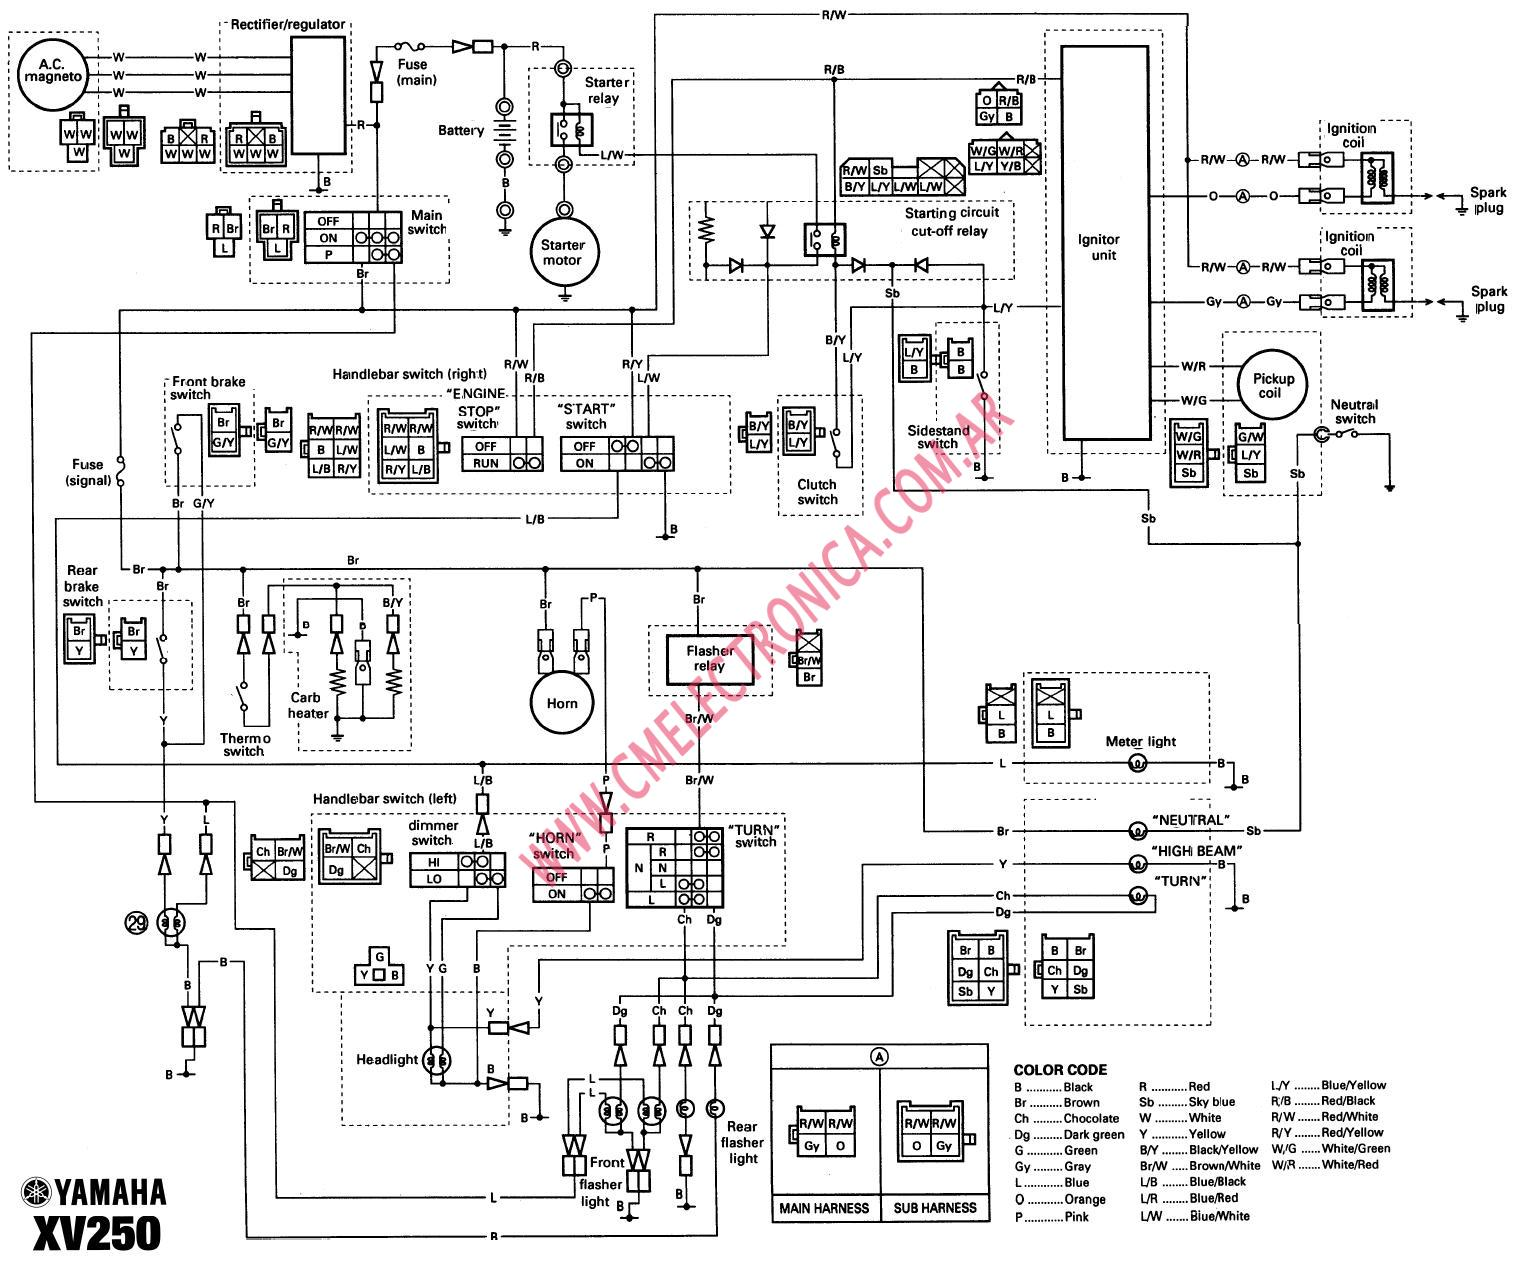 153 moreover Free 2003 Polaris Ranger 500 Wiring Diagram likewise T12629878 Adjust carburetor mixture screws 2001 additionally Yamaha 150 4 Stroke Gauge Wiring Diagram together with Electric Starter  ponents. on yamaha 50 parts diagram free image about wiring